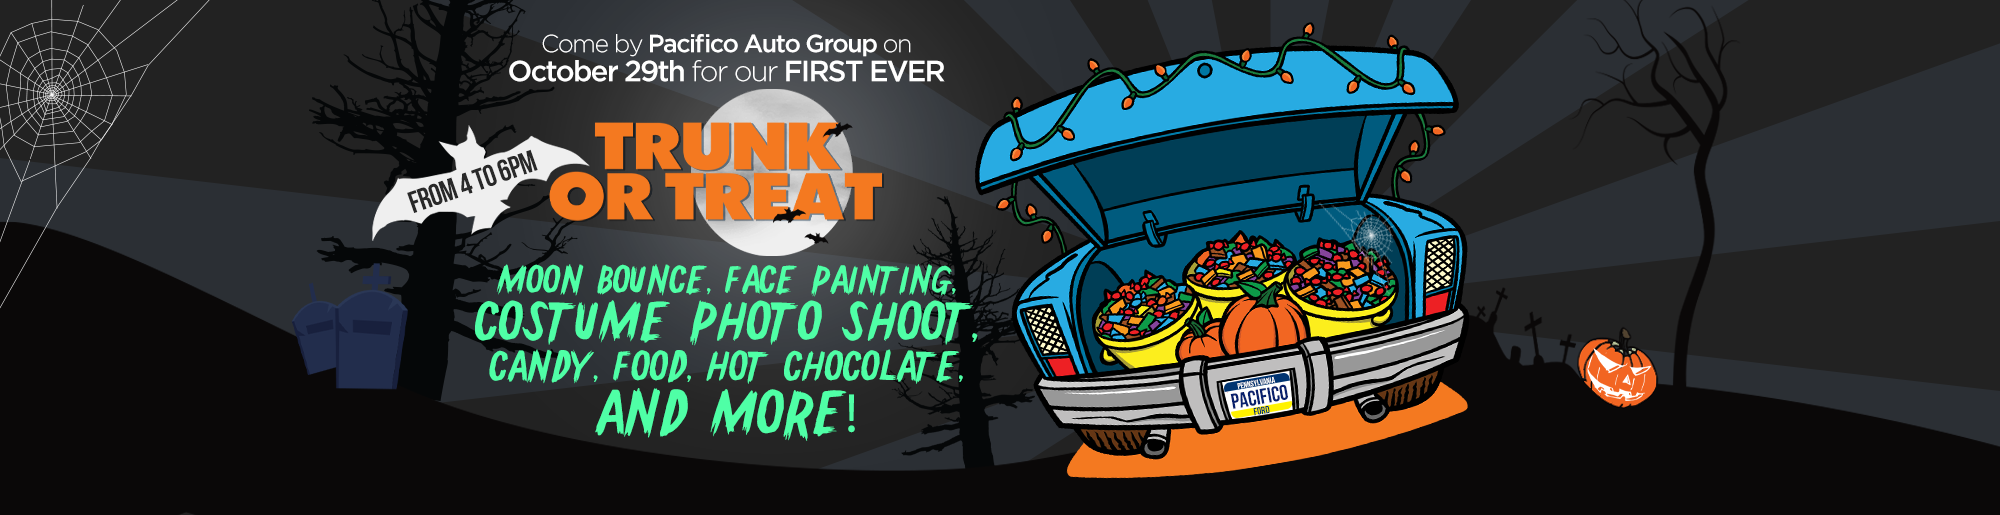 come by pacifico auto group on October 29th for our first ever trunk or treat from 4pm to 6pm. moon bounce, face painting, costume photo shoot, candy, food, hot chocolate, and more!